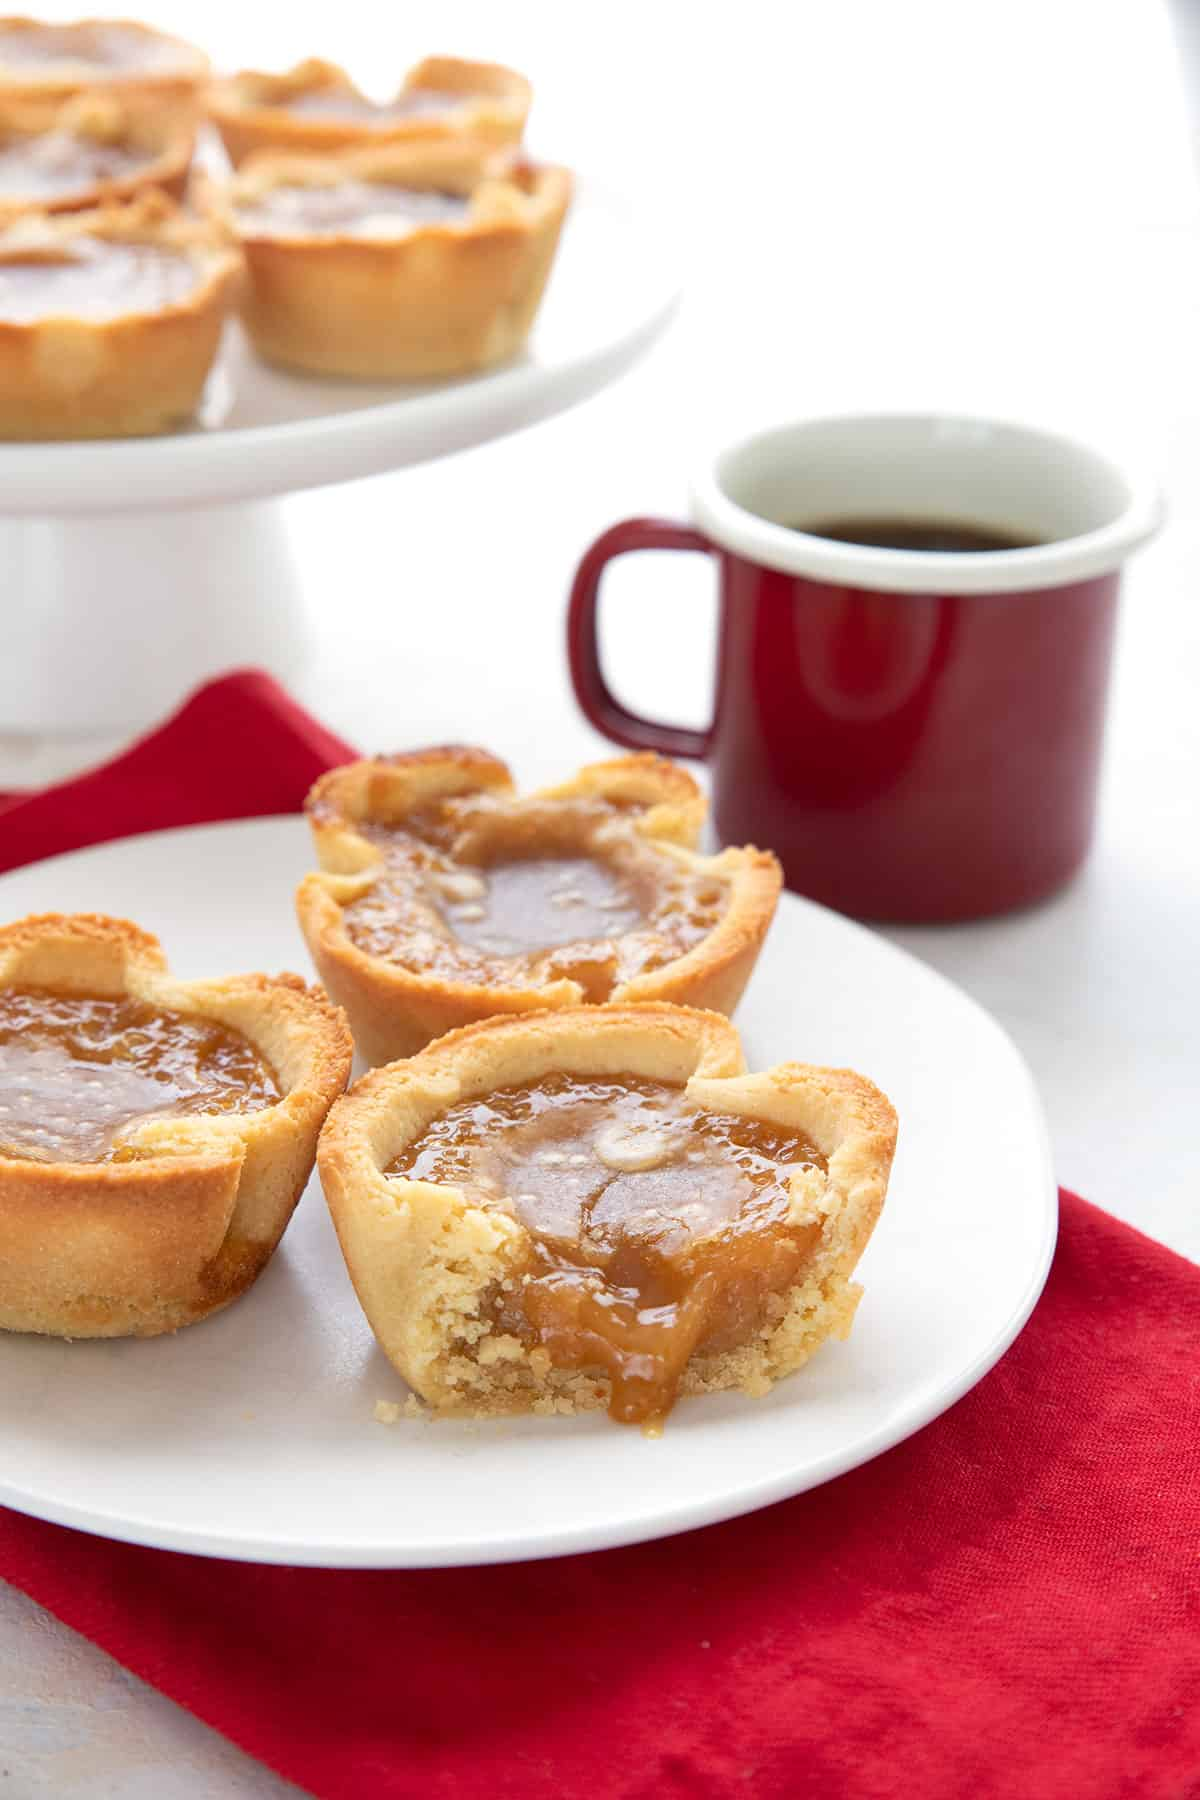 Three keto butter tarts on a plate over a red napkin with a cup of coffee in the background.